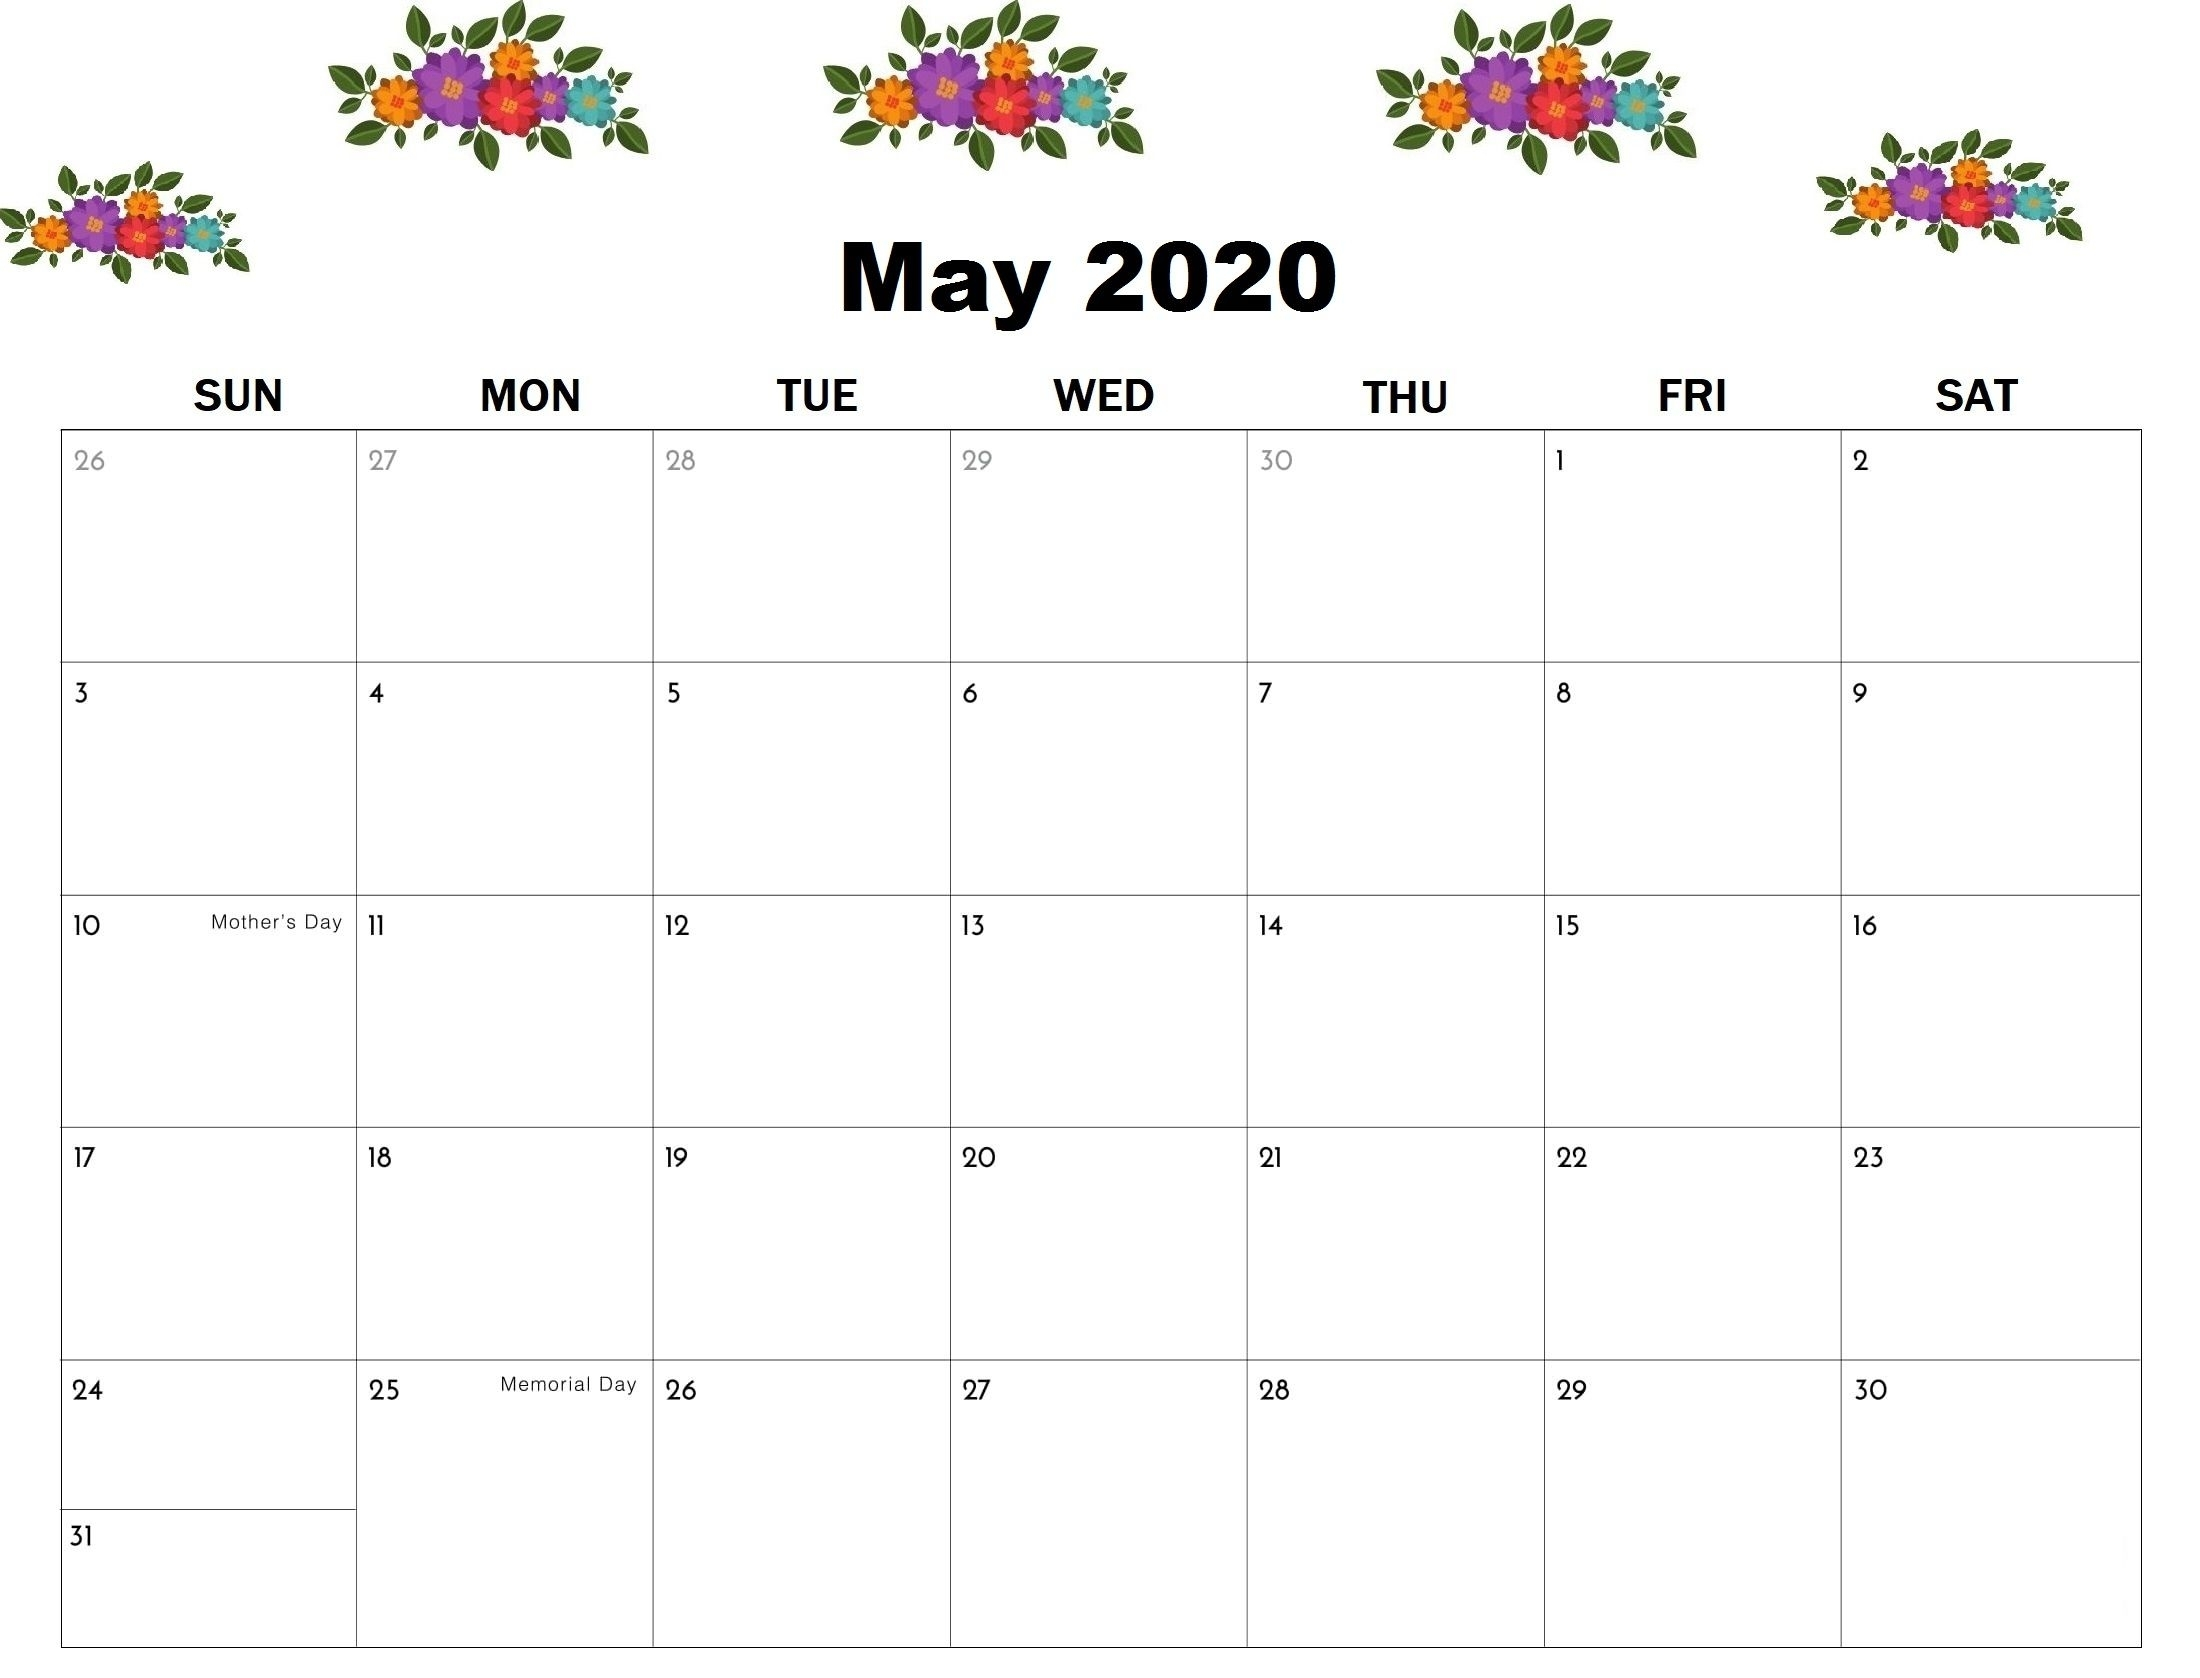 You Can Add Your Upcoming Holidays In May 2020 Calendar